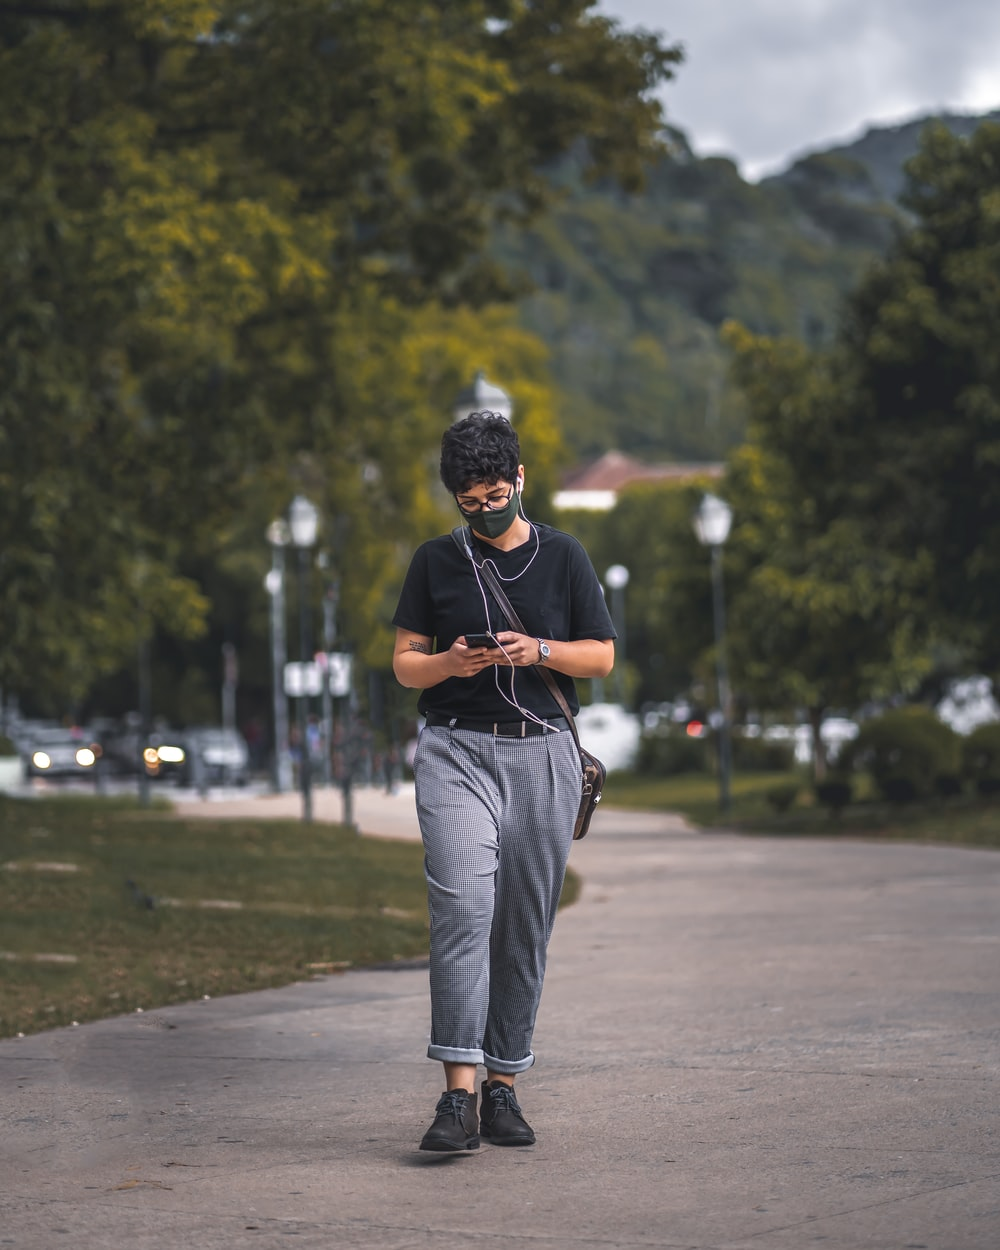 man in black t-shirt and gray pants playing golf during daytime